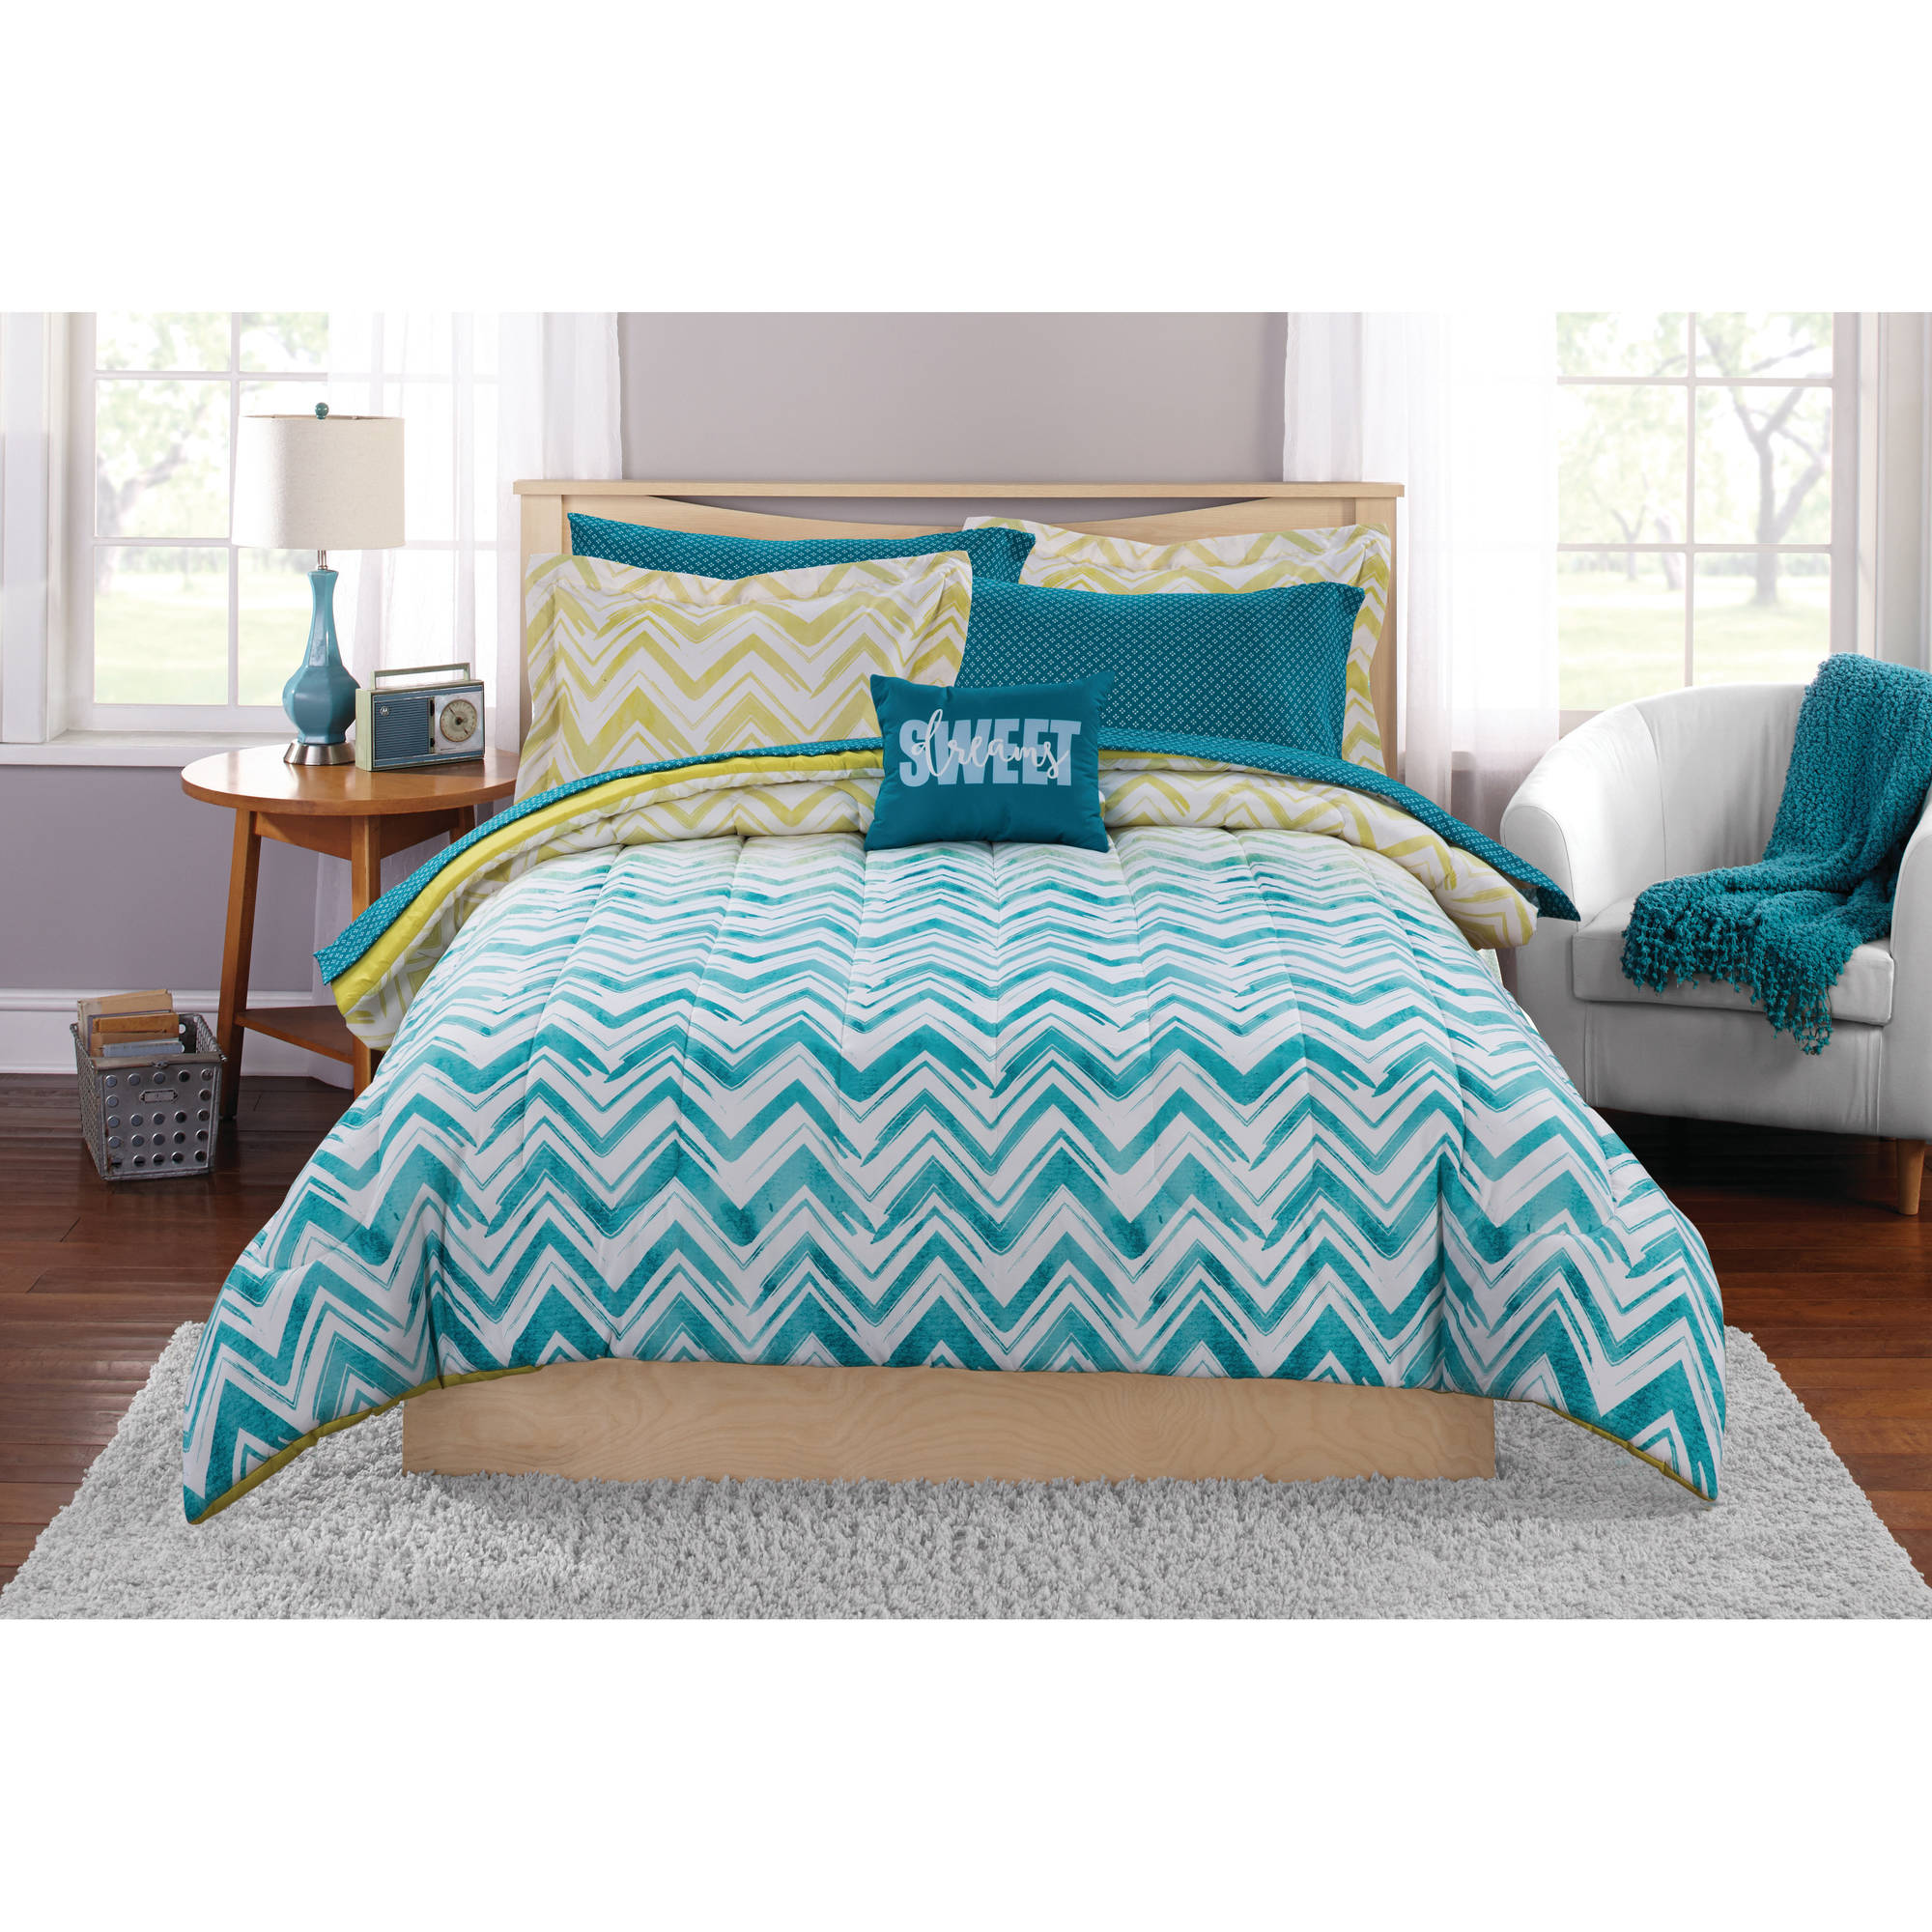 Mainstays Ombre Chevron Bed-In-A-Bag Bedding Set